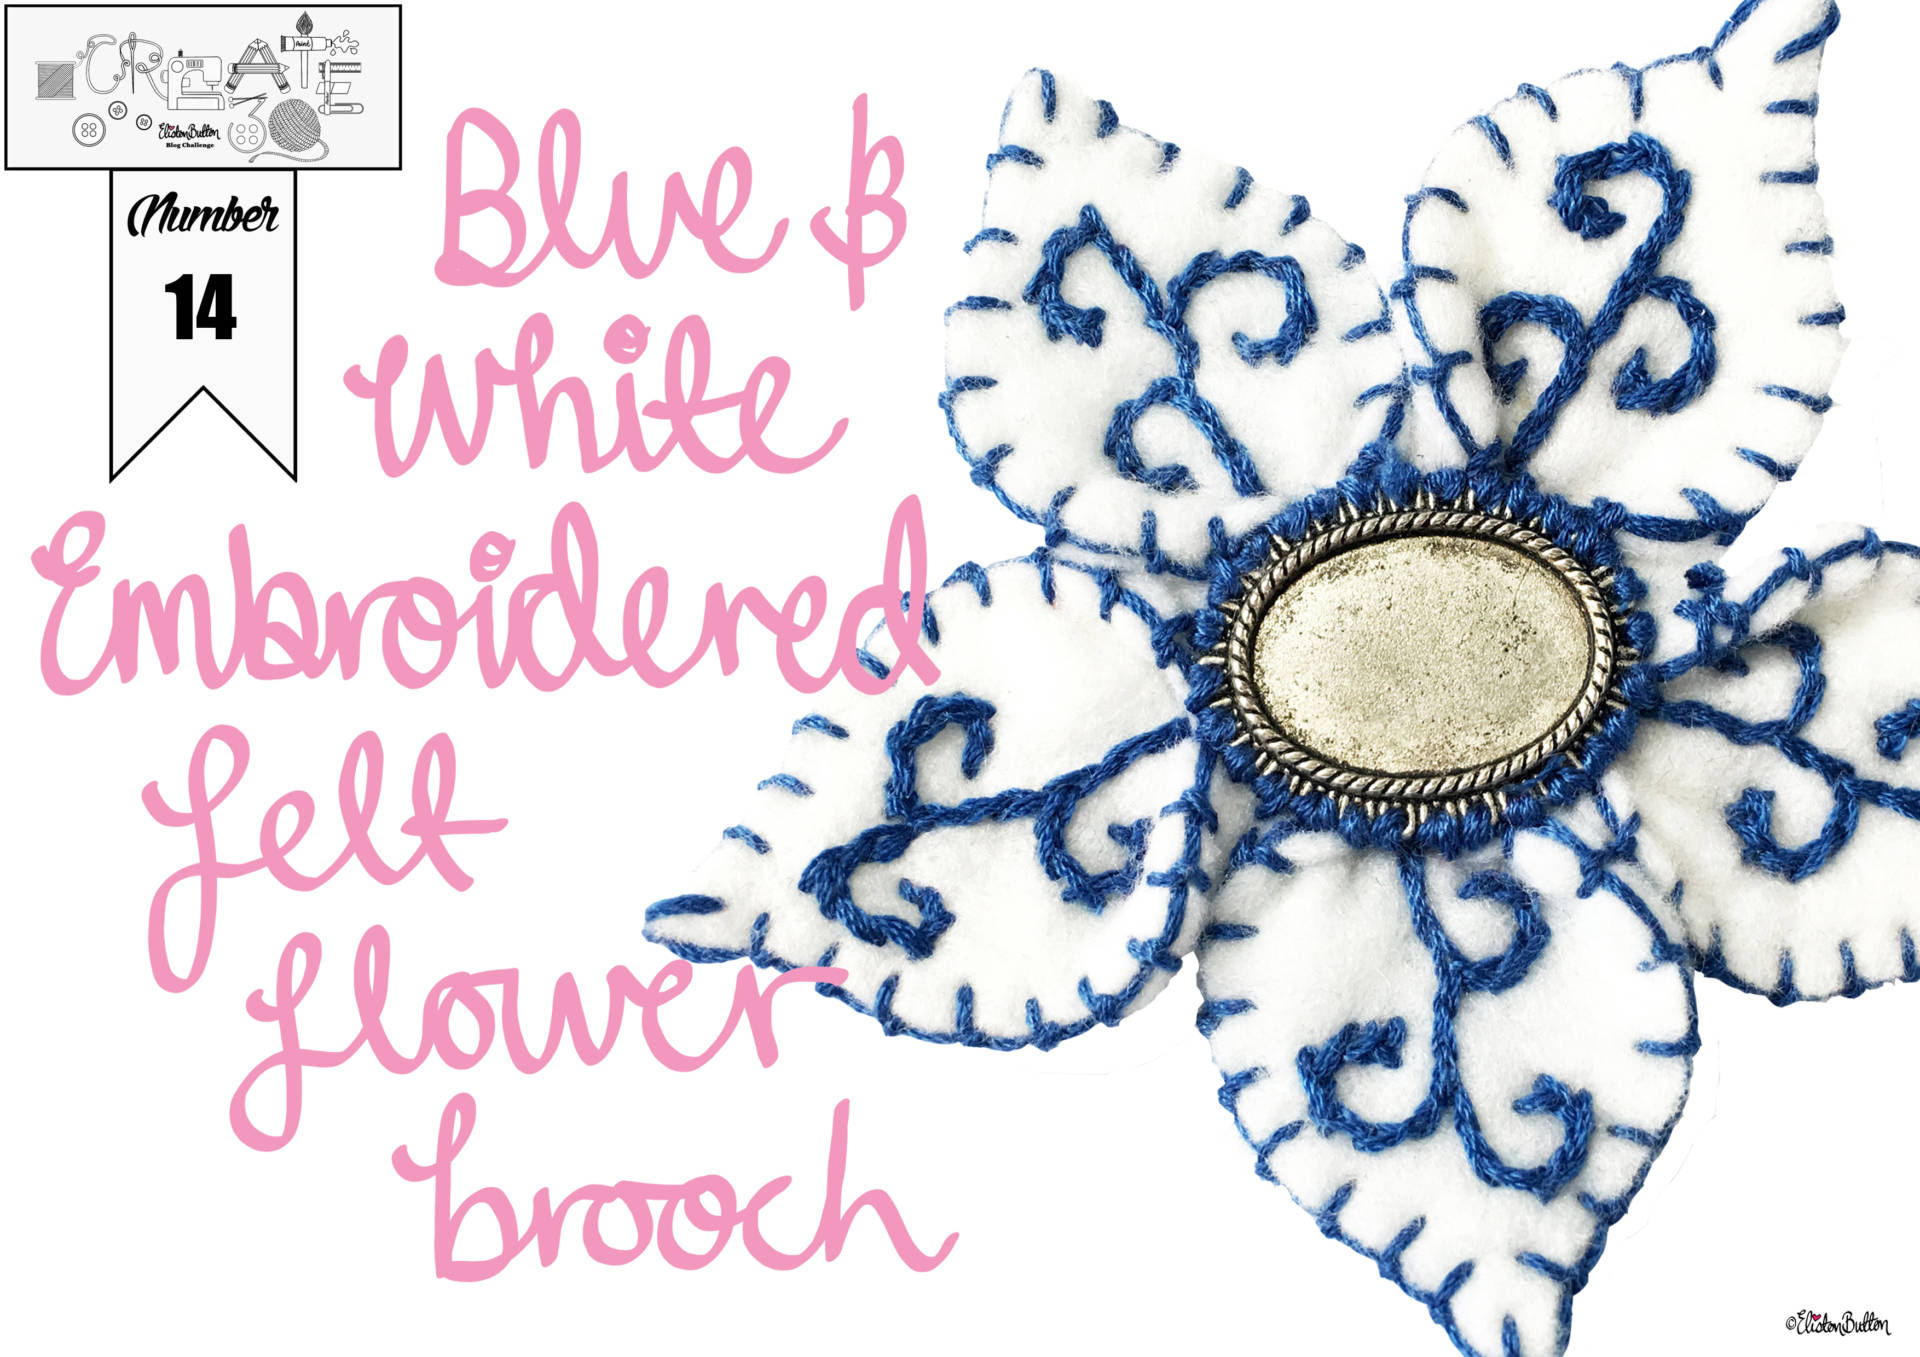 Create 30 - No. 14 - Blue and White Embroidered Felt FLower Brooch by Eliston Button Title Banner - Create 30 - No. 14 - Blue and White Embroidered Felt Flower Brooch at www.elistonbutton.com - Eliston Button - That Crafty Kid – Art, Design, Craft & Adventure.